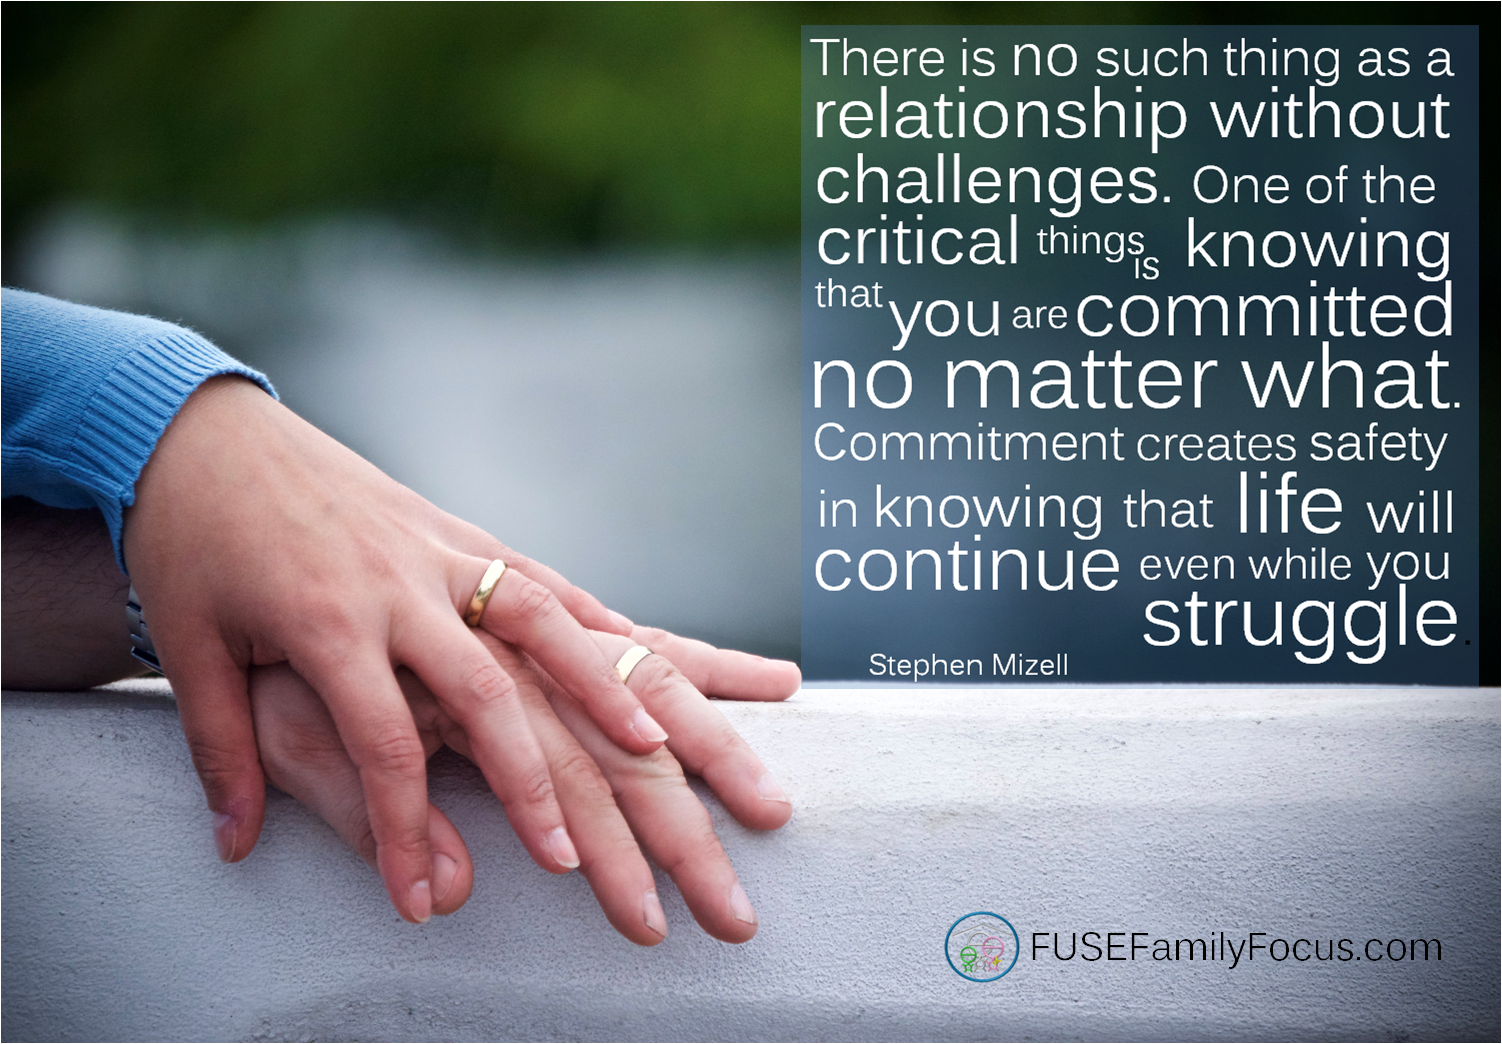 there is no such thing as a relationship without challenges